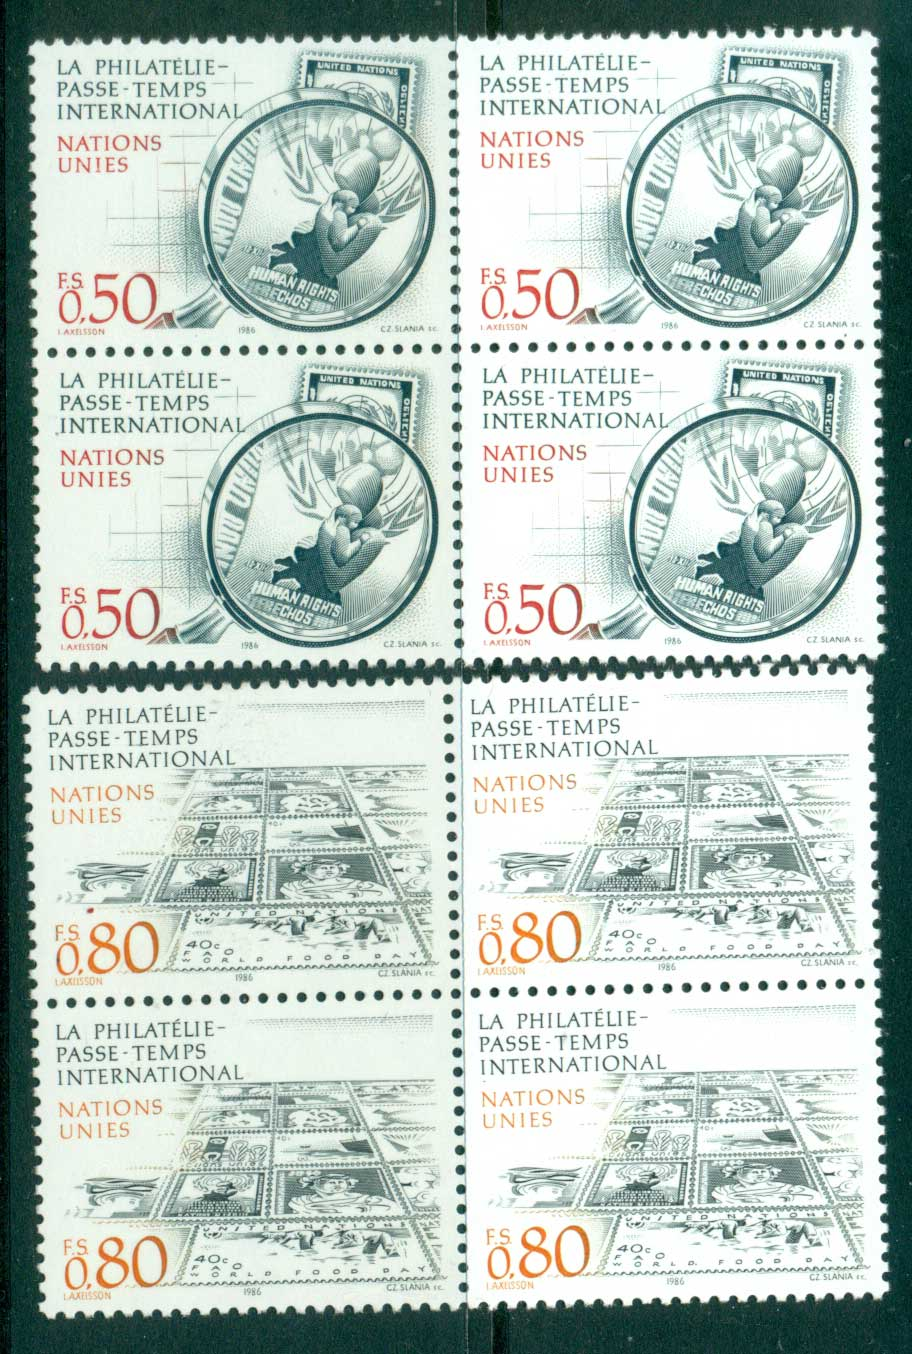 UN Geneva 1986 Stamp Collecting Blk 4 MUH lot40974